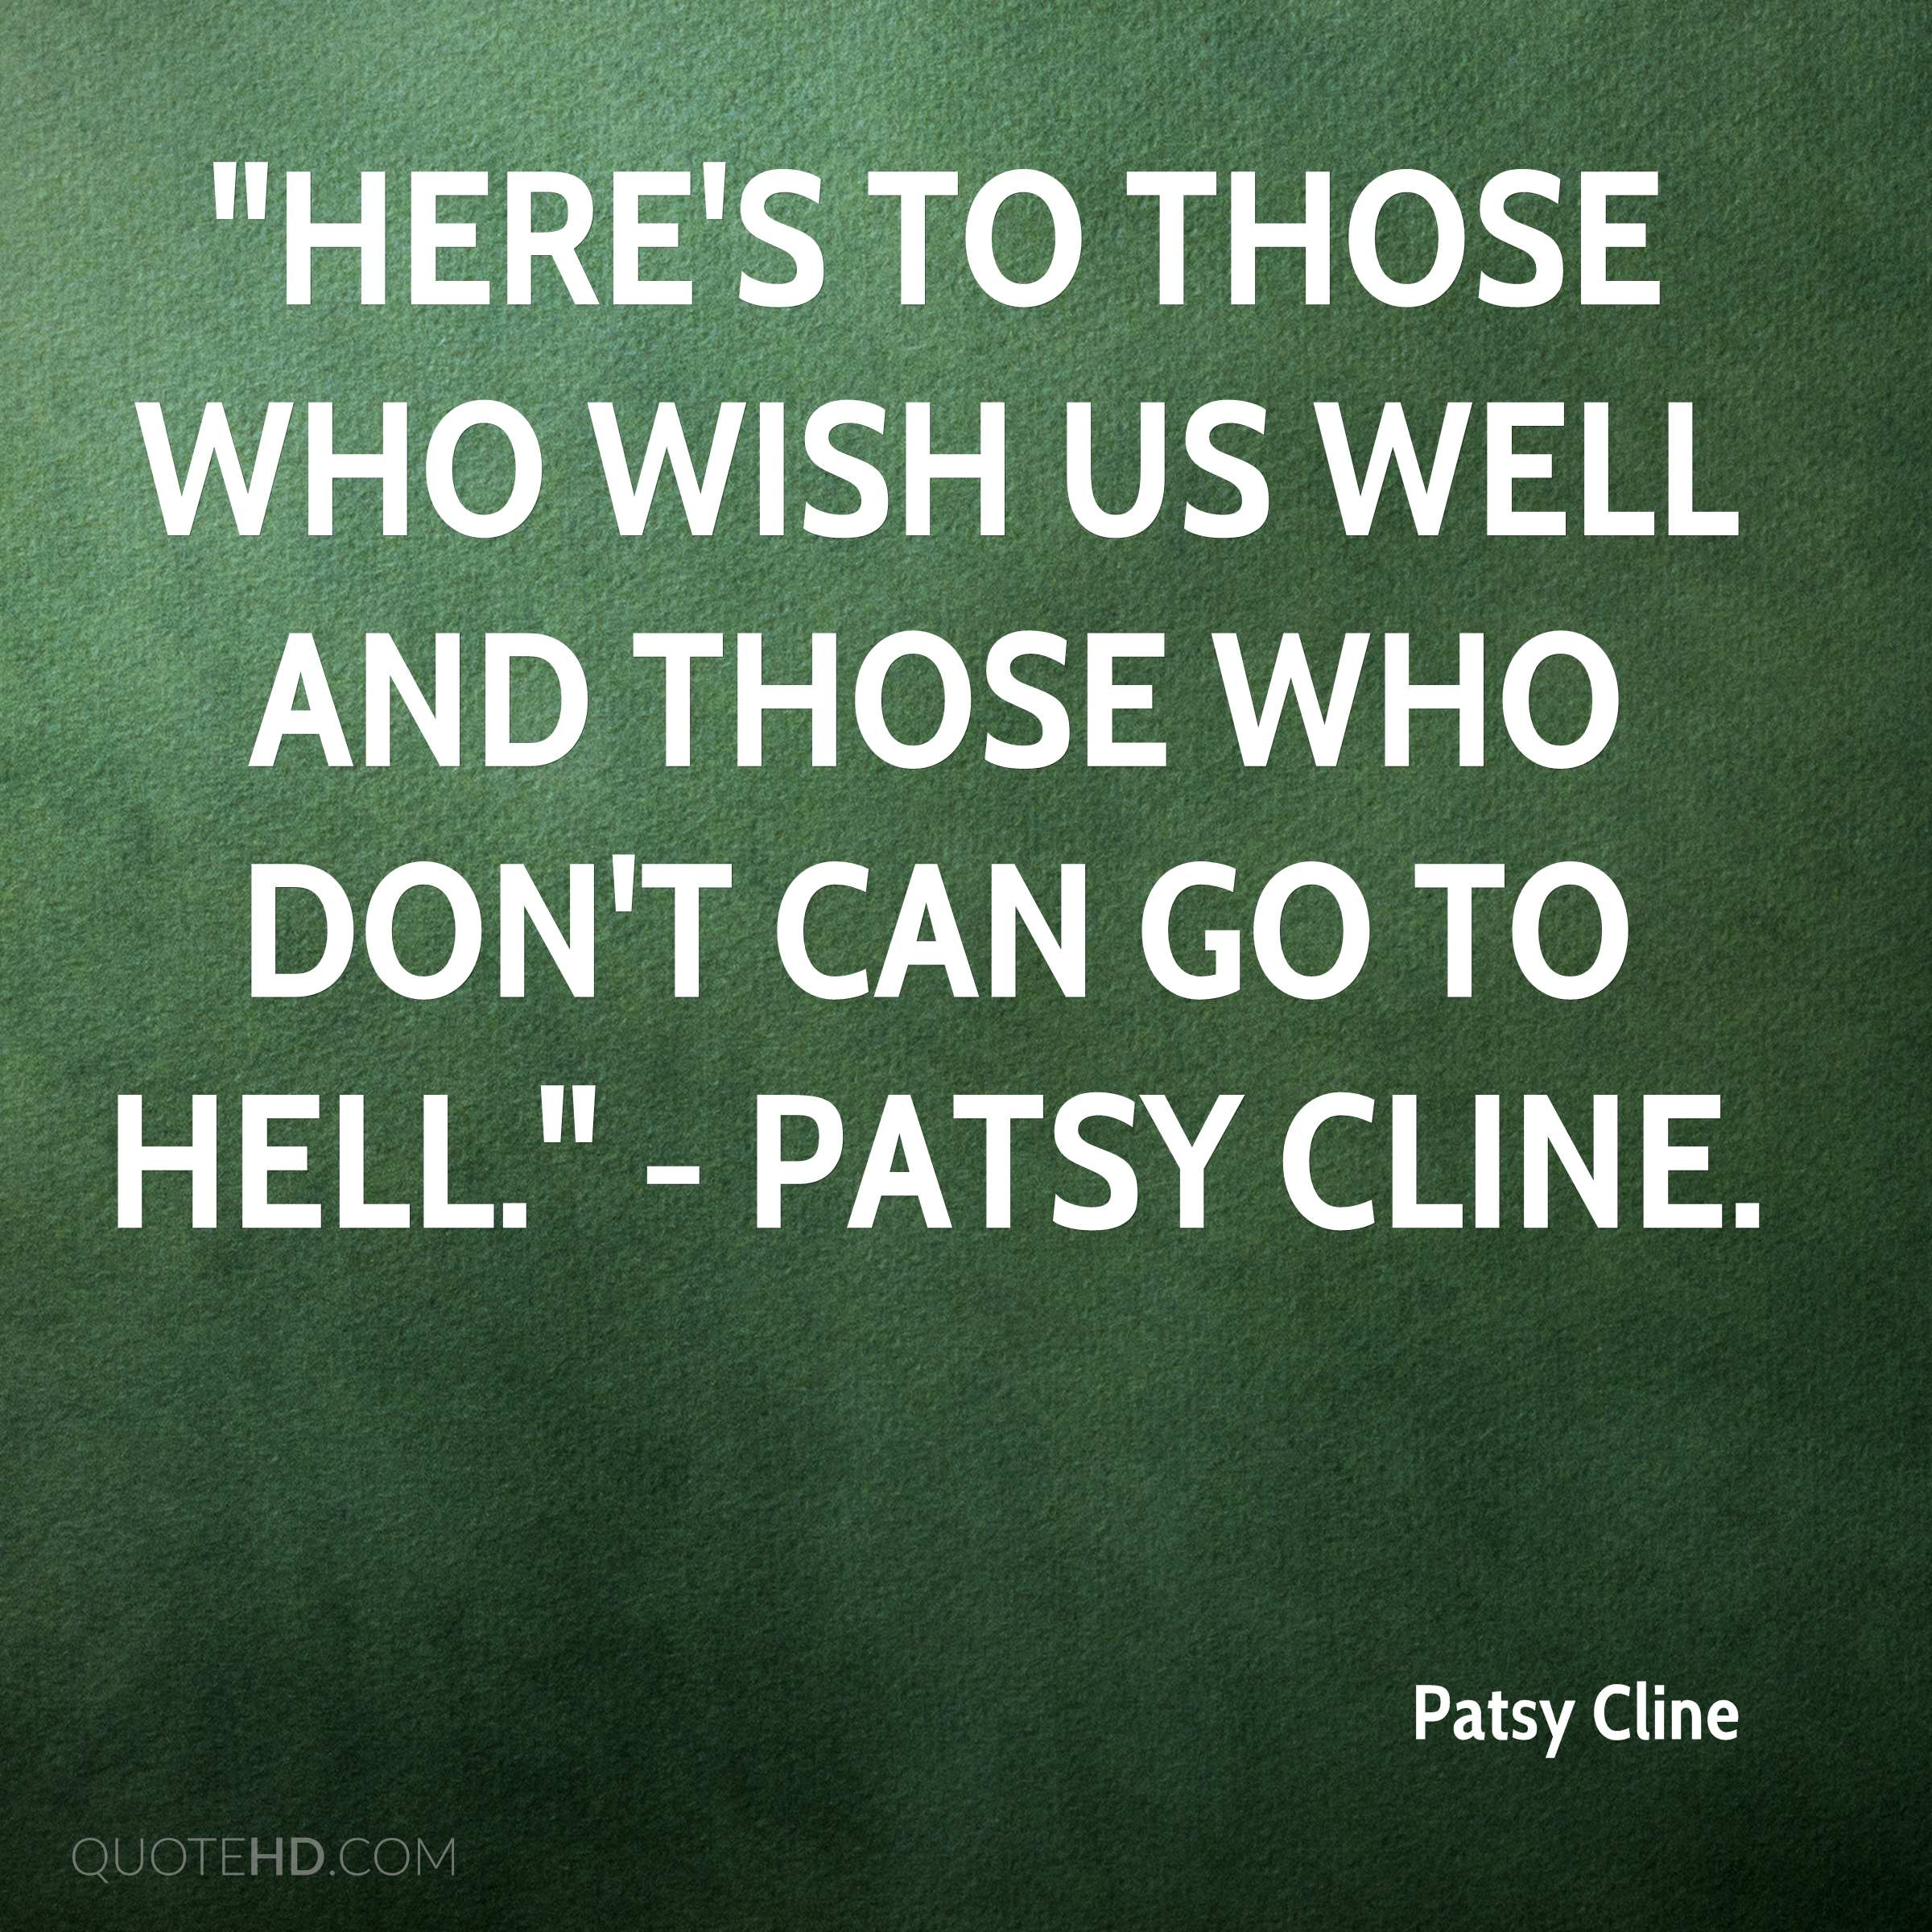 """""""Here's to those who wish us well and those who don't can go to hell."""" - Patsy Cline."""